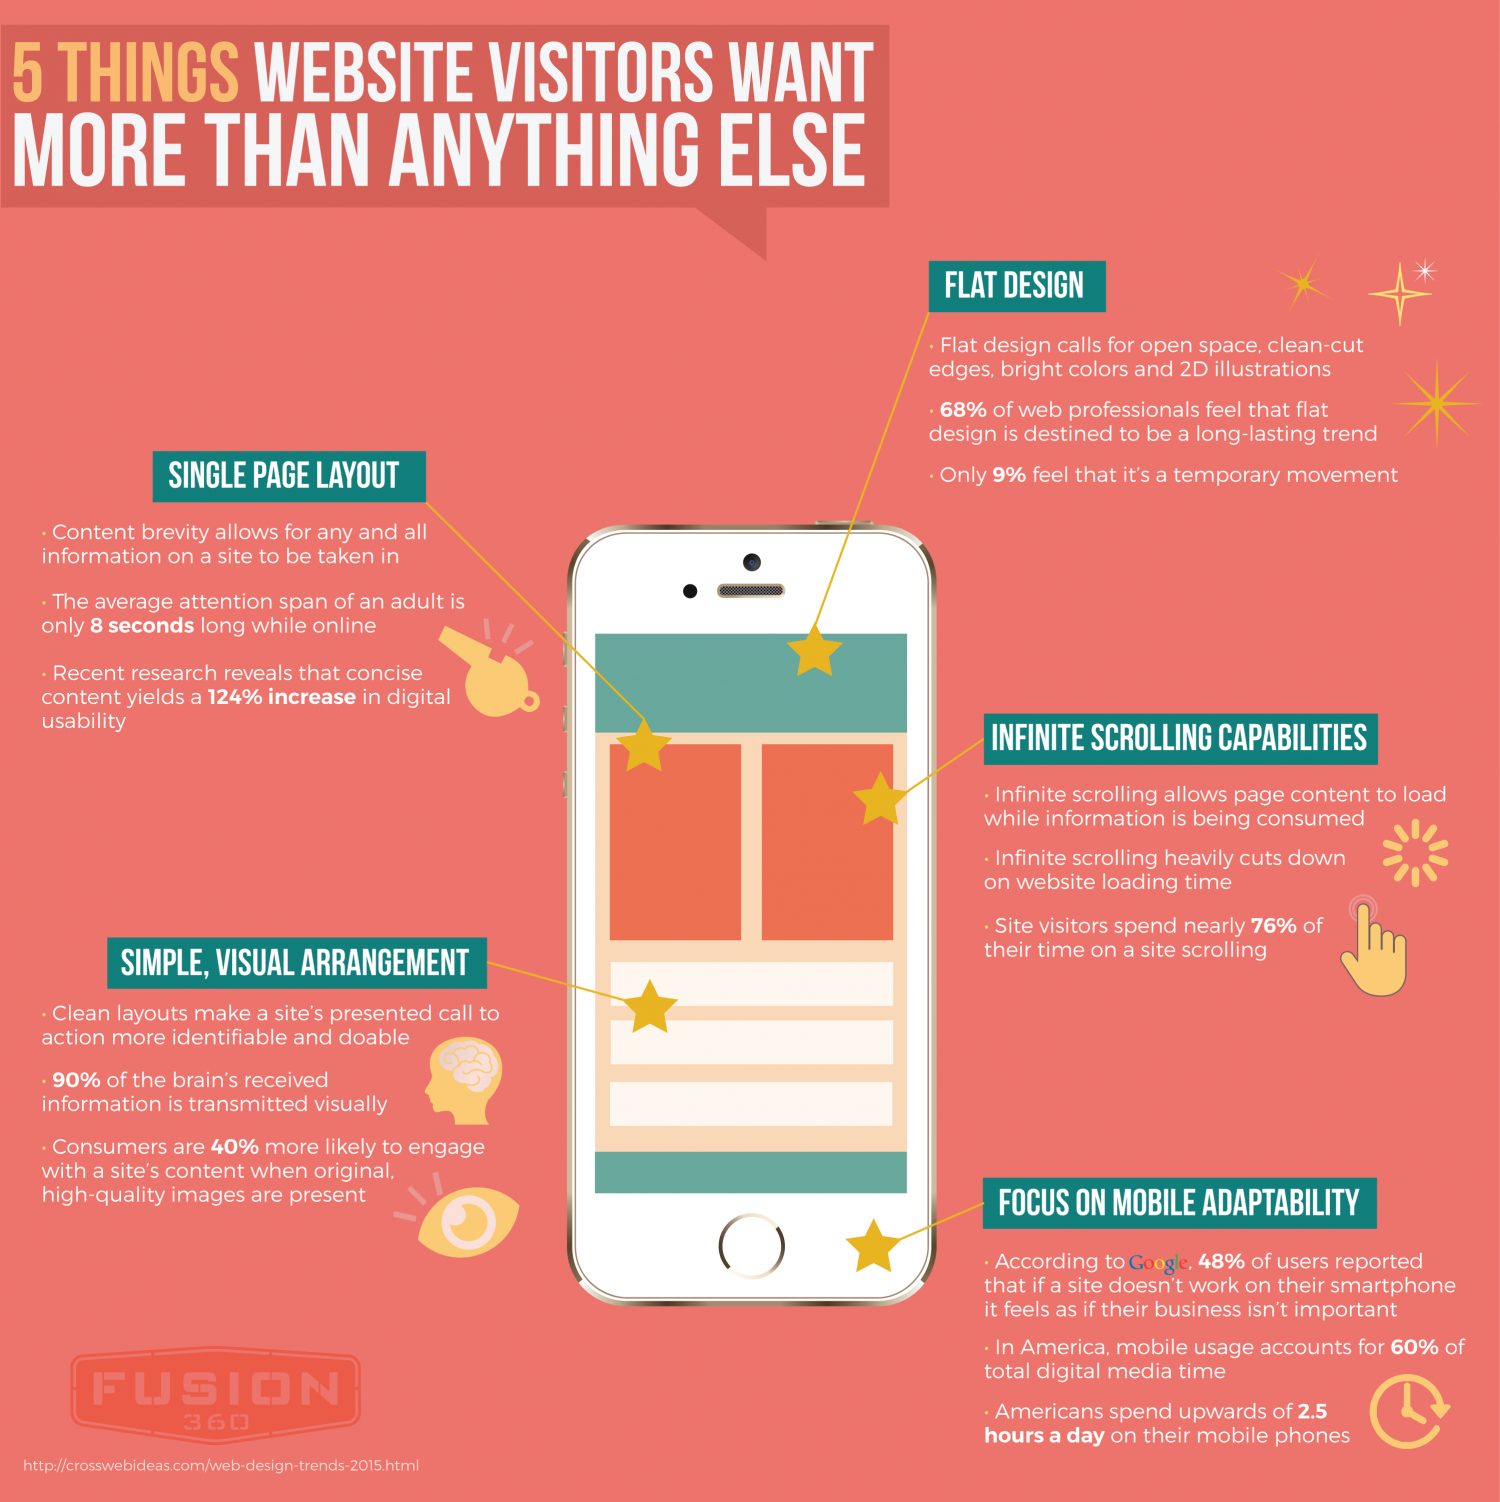 5 Things Website Visitors Want More Than Anything Else Infographic